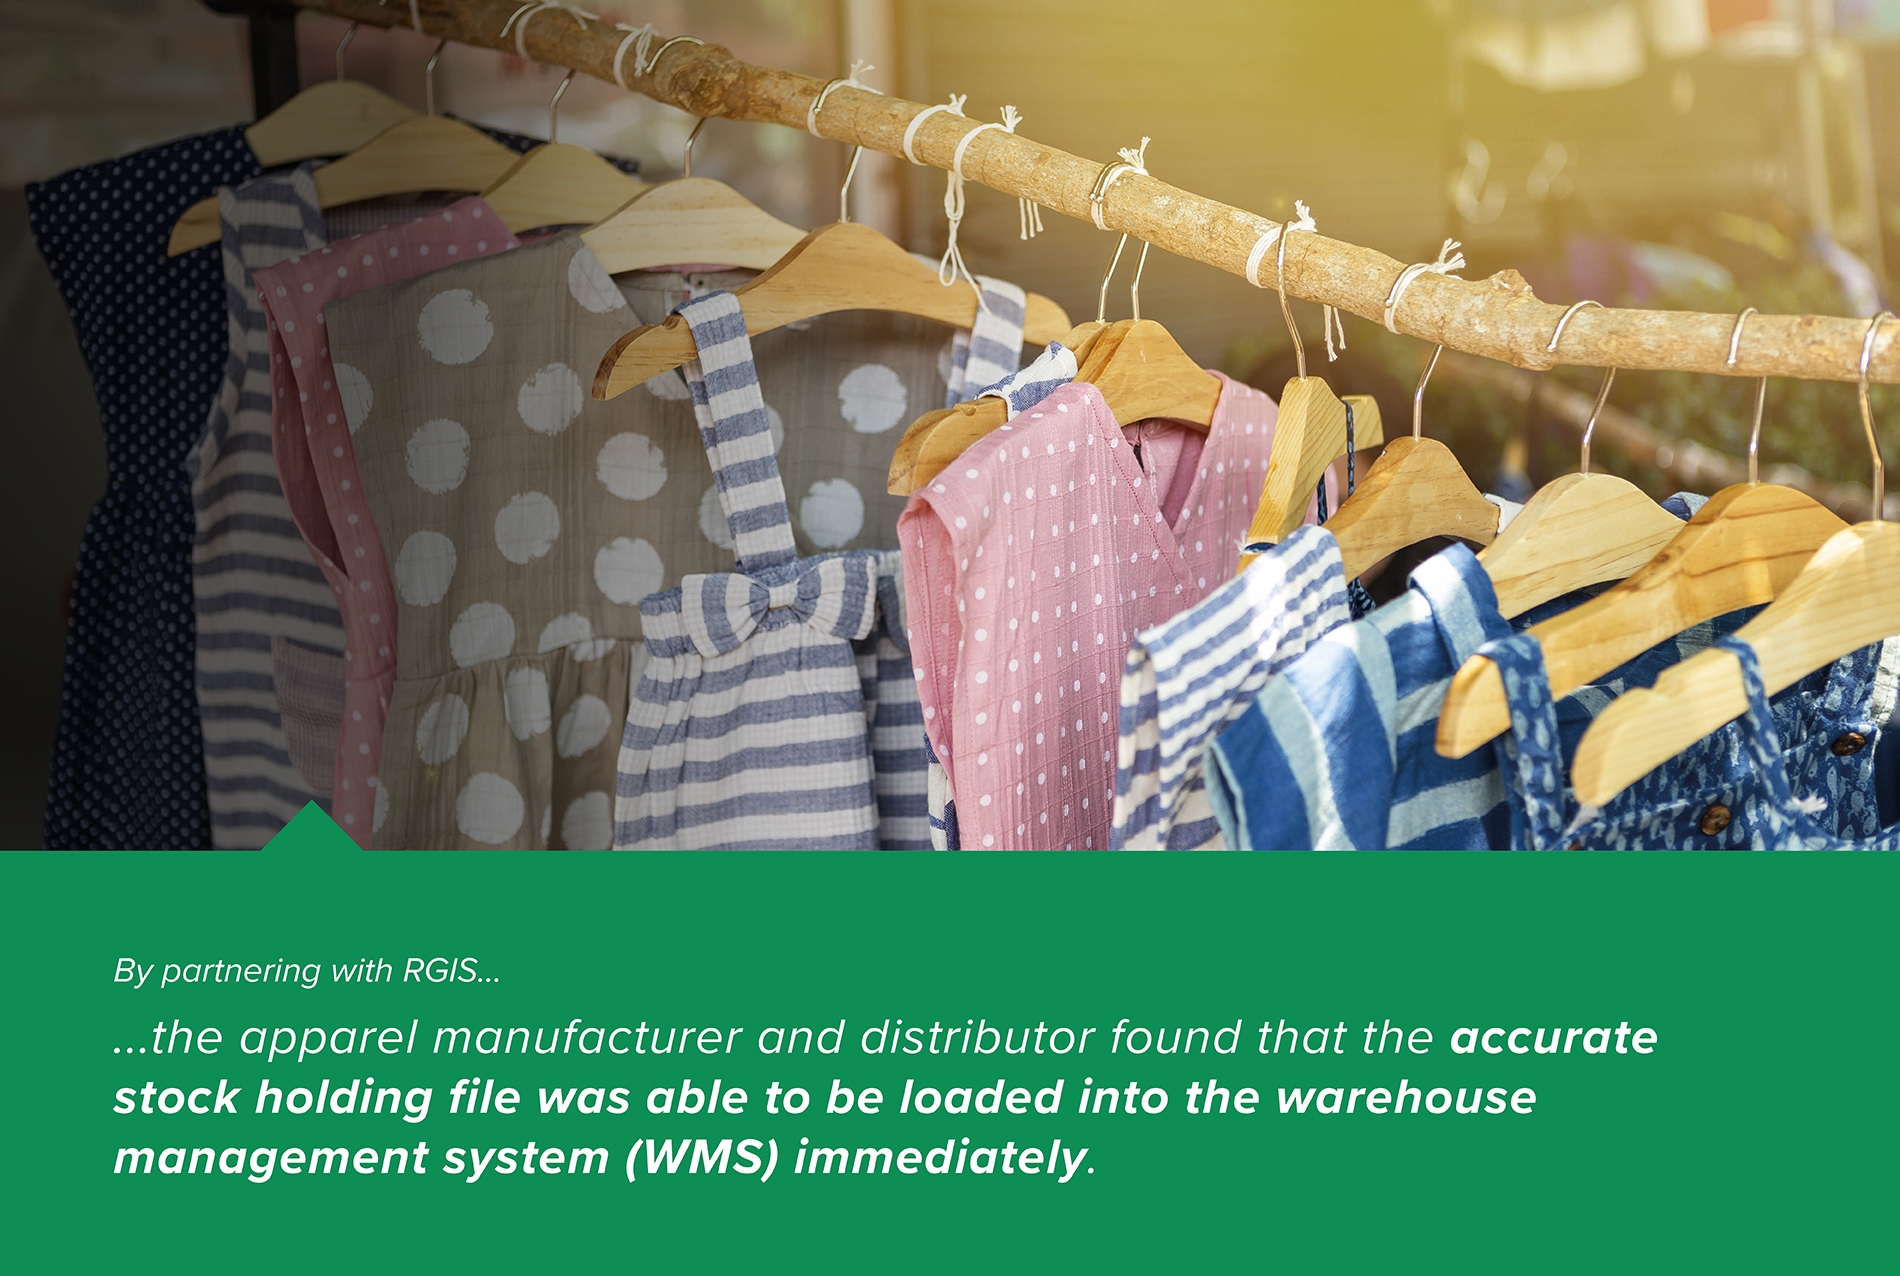 Apparel Manufacturer and Distributor Warehouse Count